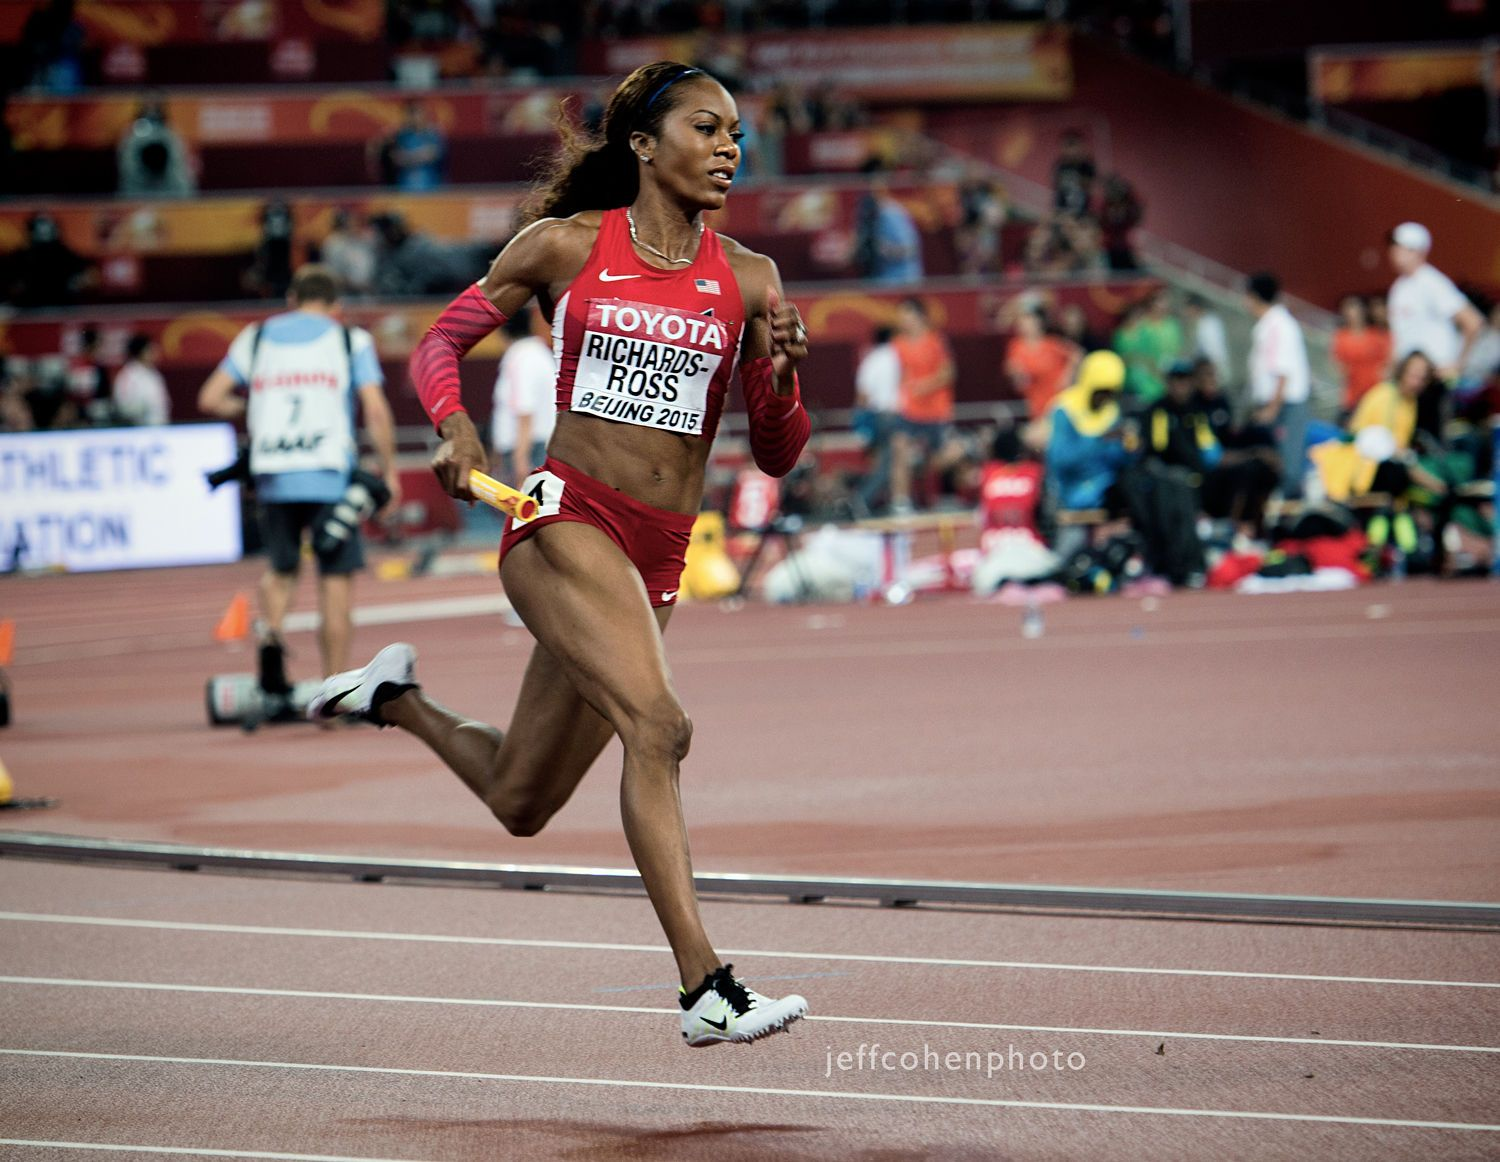 1beijing2015_night_9_sanya_richards_ross_400m_relay_jeff_cohen_photo_35227_web.jpg